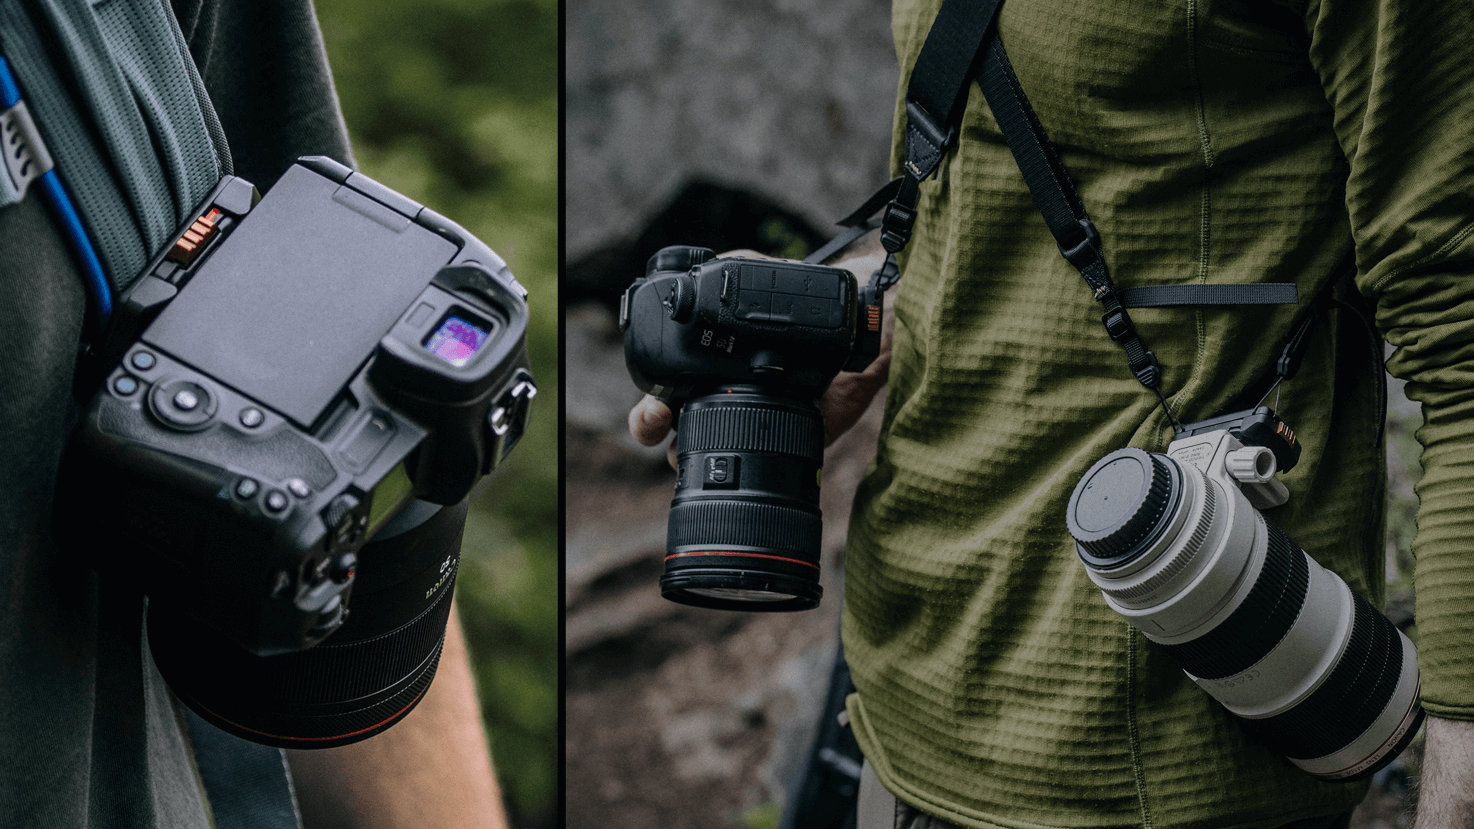 Carry professional camera bodies and long lens setups with confidence